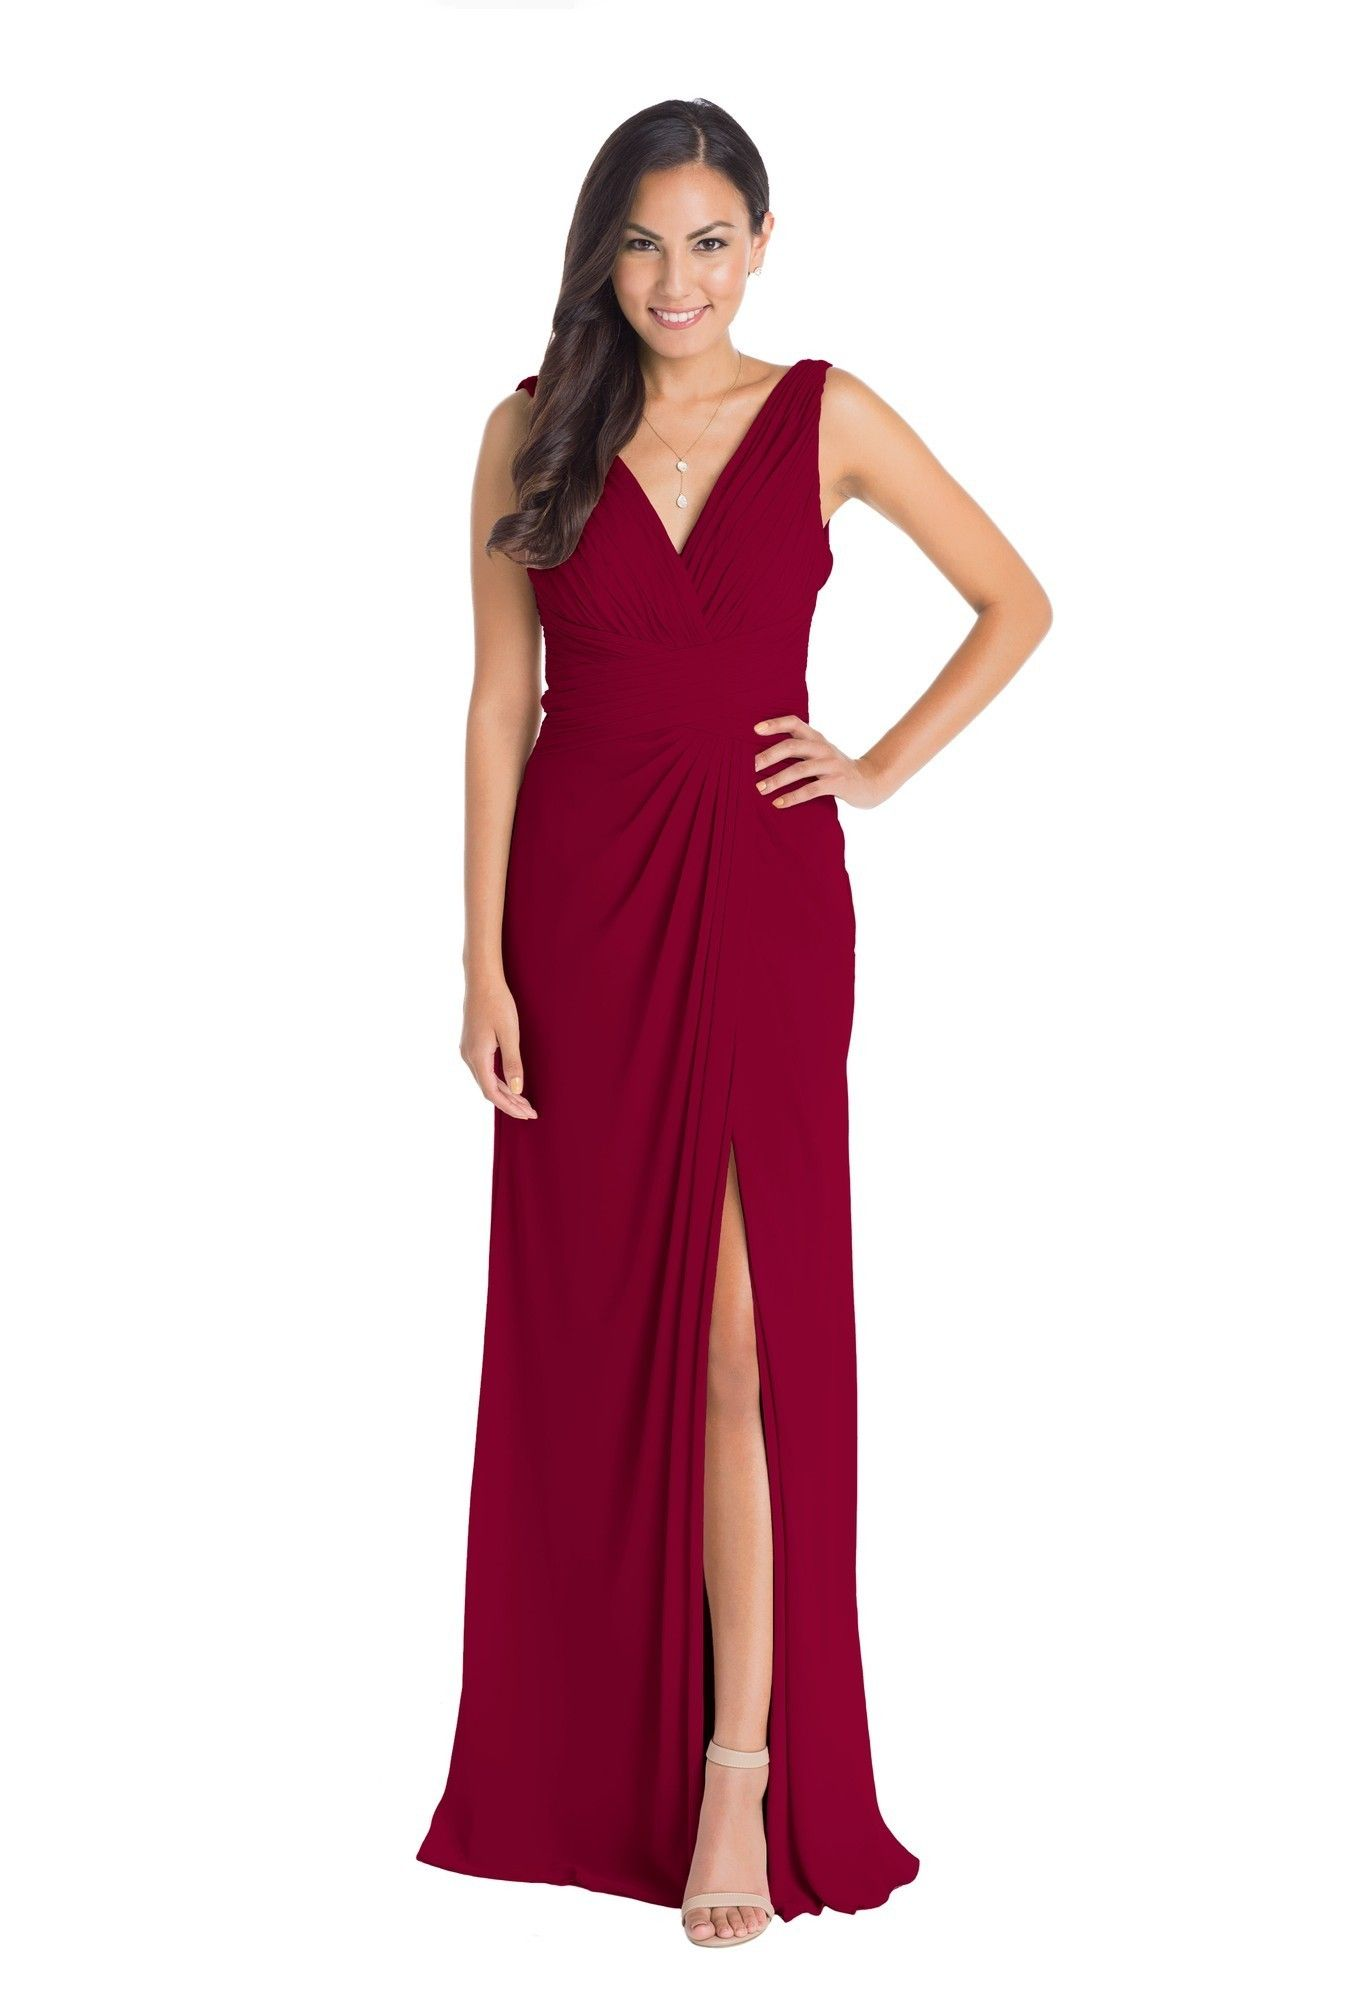 This Elegant Red Crinkle Chiffon Floor Length Bridesmaid Gown By Watters Features Flattering Front And Back Vnecklines Discover More Dresses To: Crinkled V Neck Dress Chagne Wedding At Websimilar.org